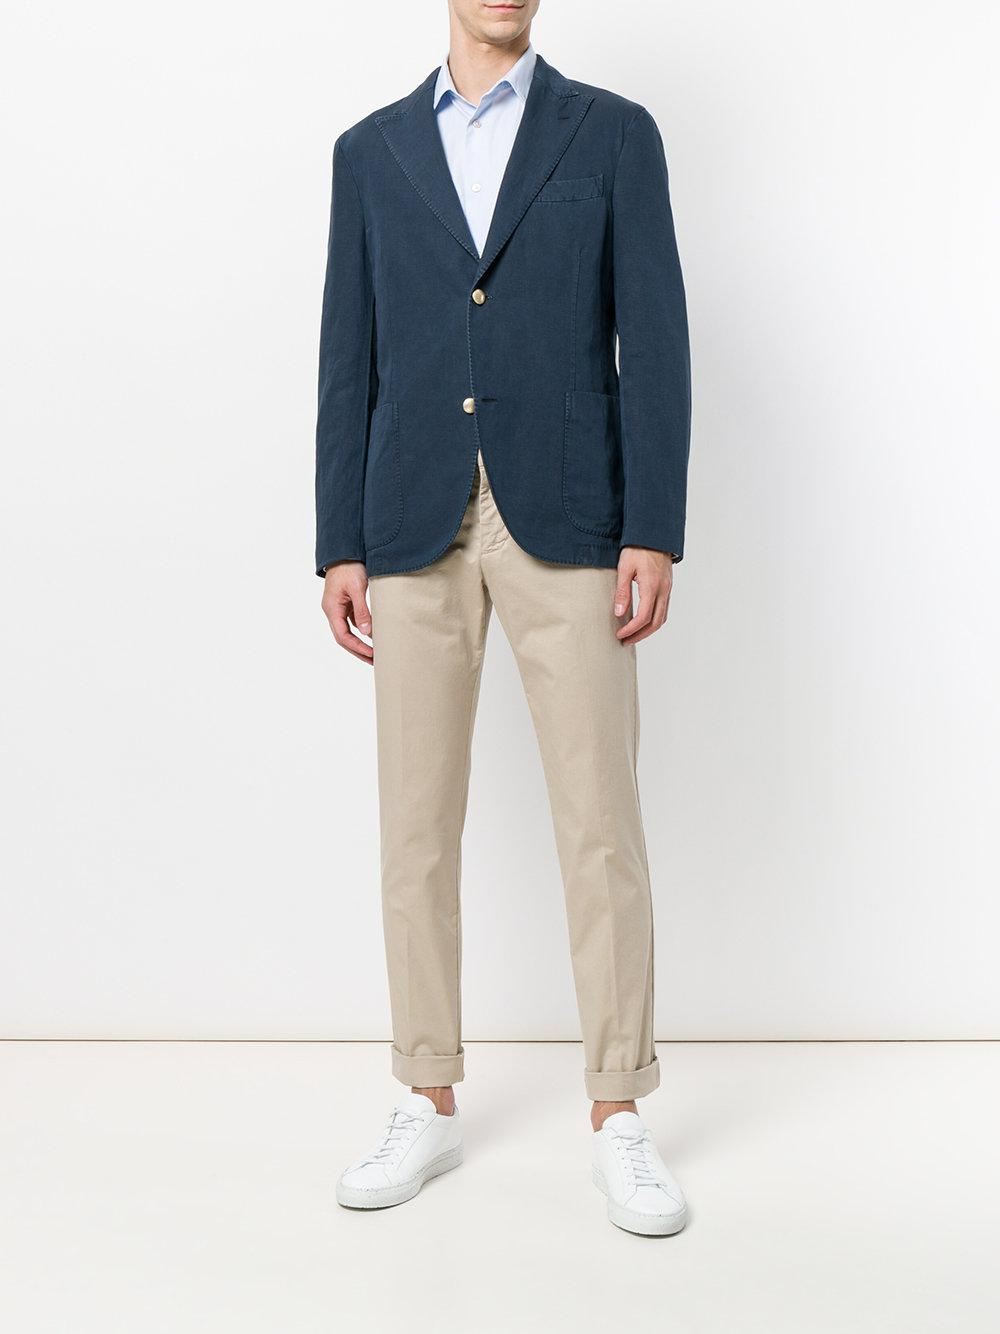 Entre Amis Cotton Tailored Fitted Trousers in Natural for Men